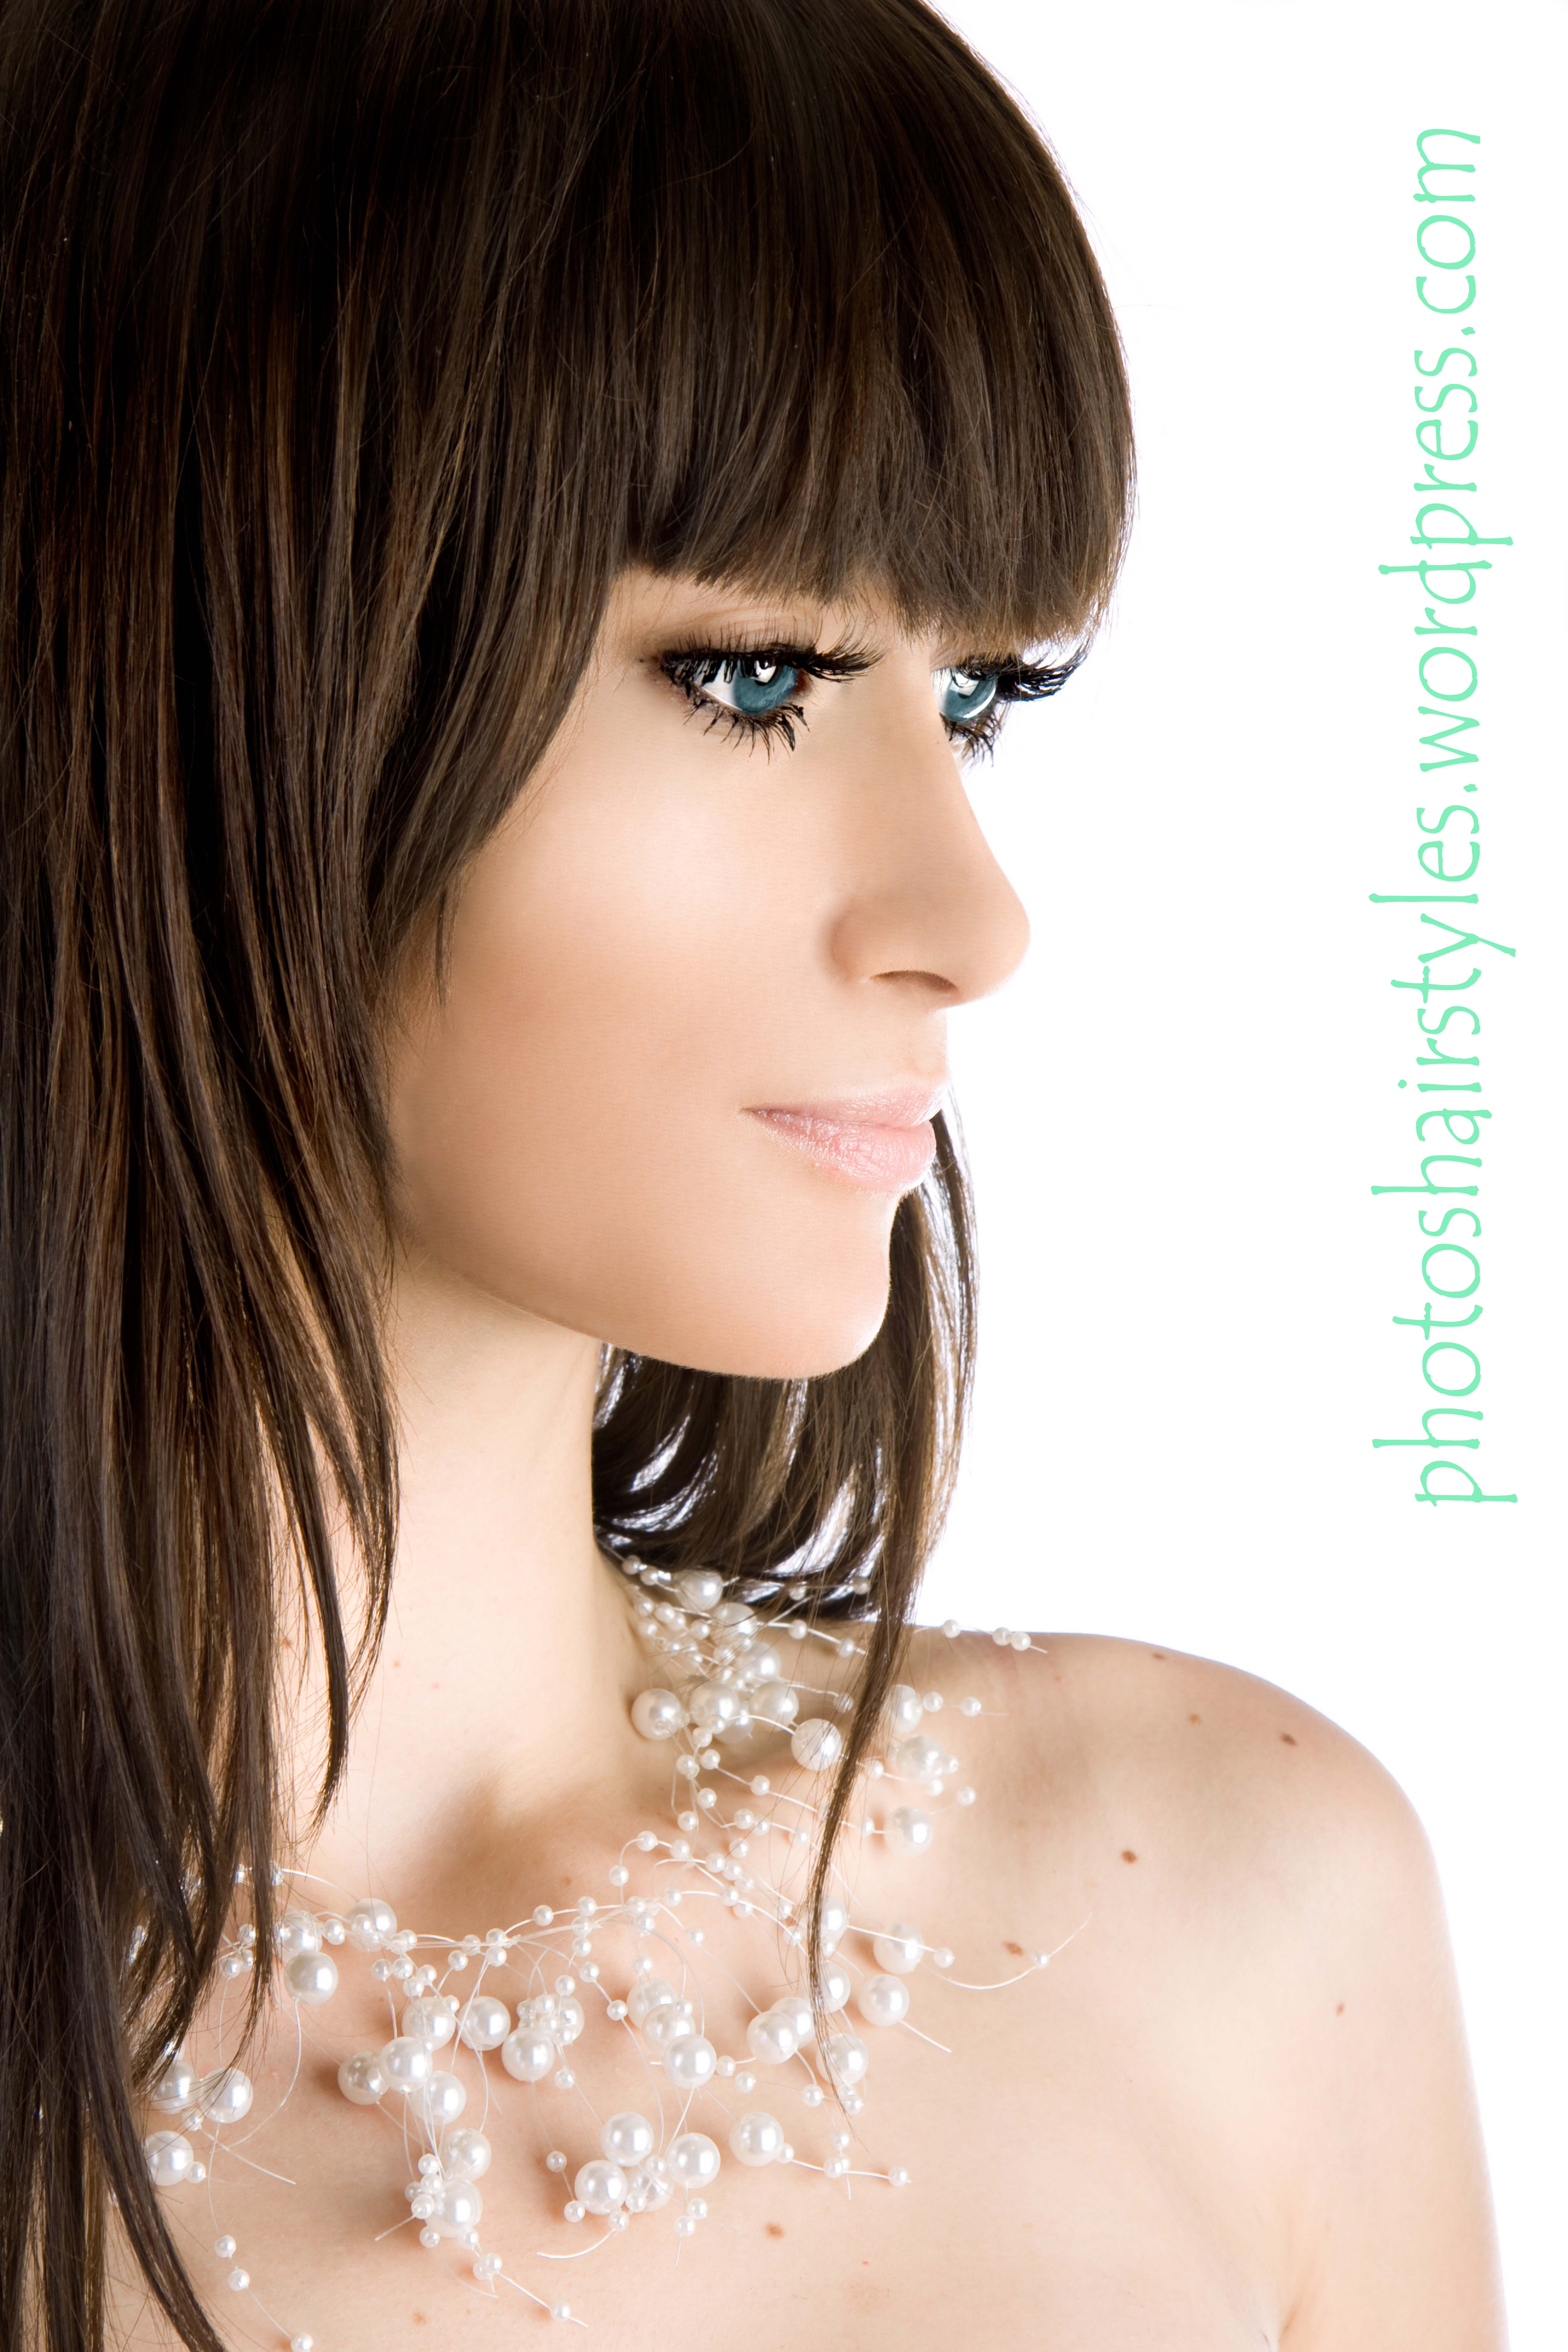 Best ideas about Haircuts For Females . Save or Pin Long Bang Hairstyle Trends Women Now.